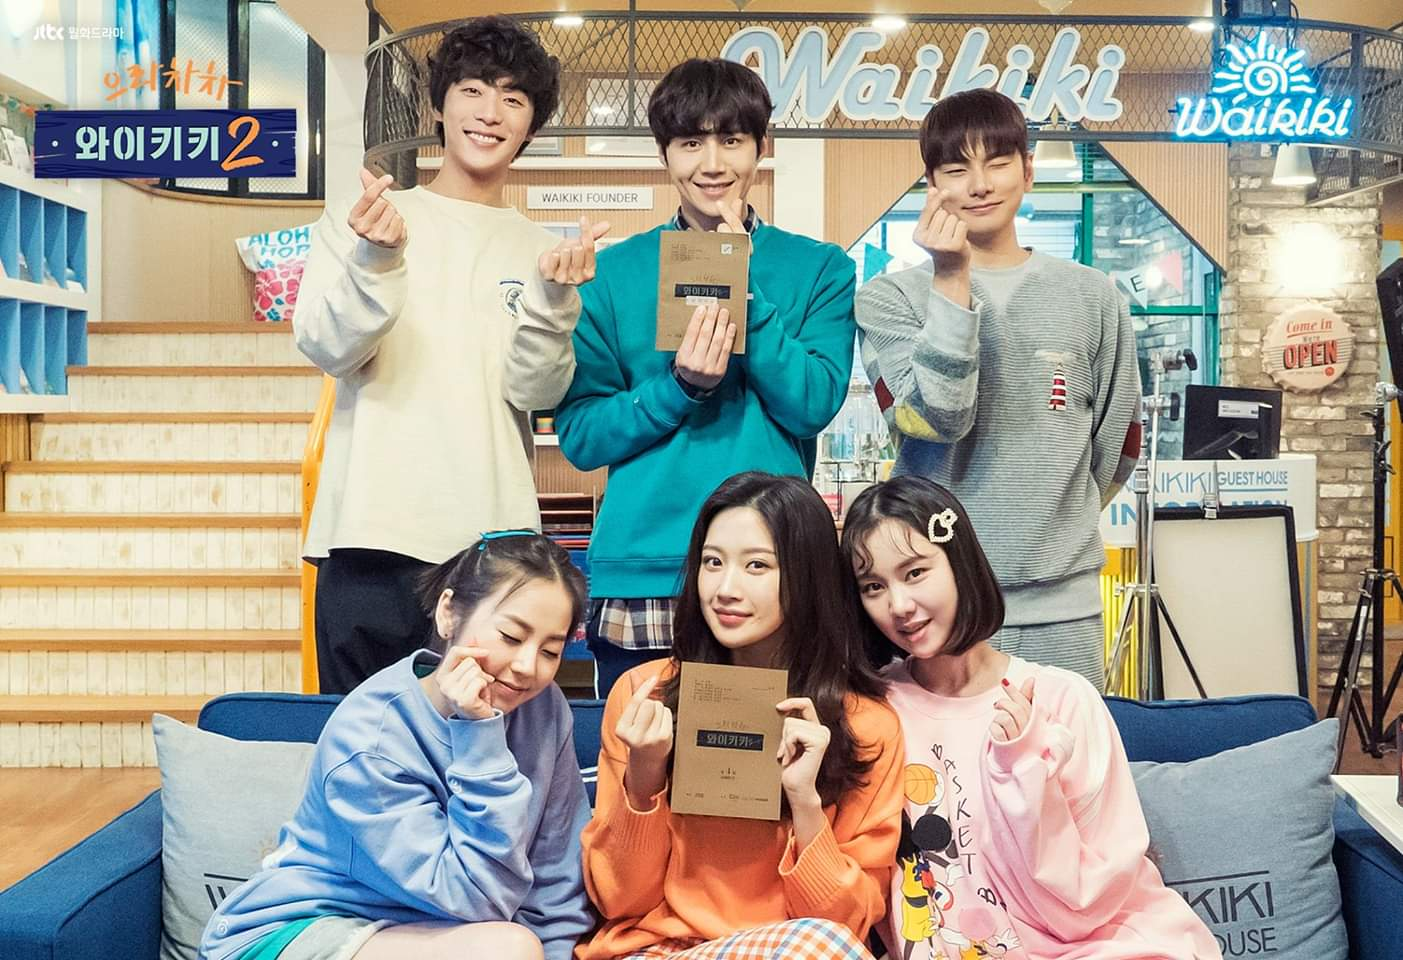 K Drama Premiere Welcome To Waikiki 2 Warms Up With Trademark Comic Elements Endearing Cast Members